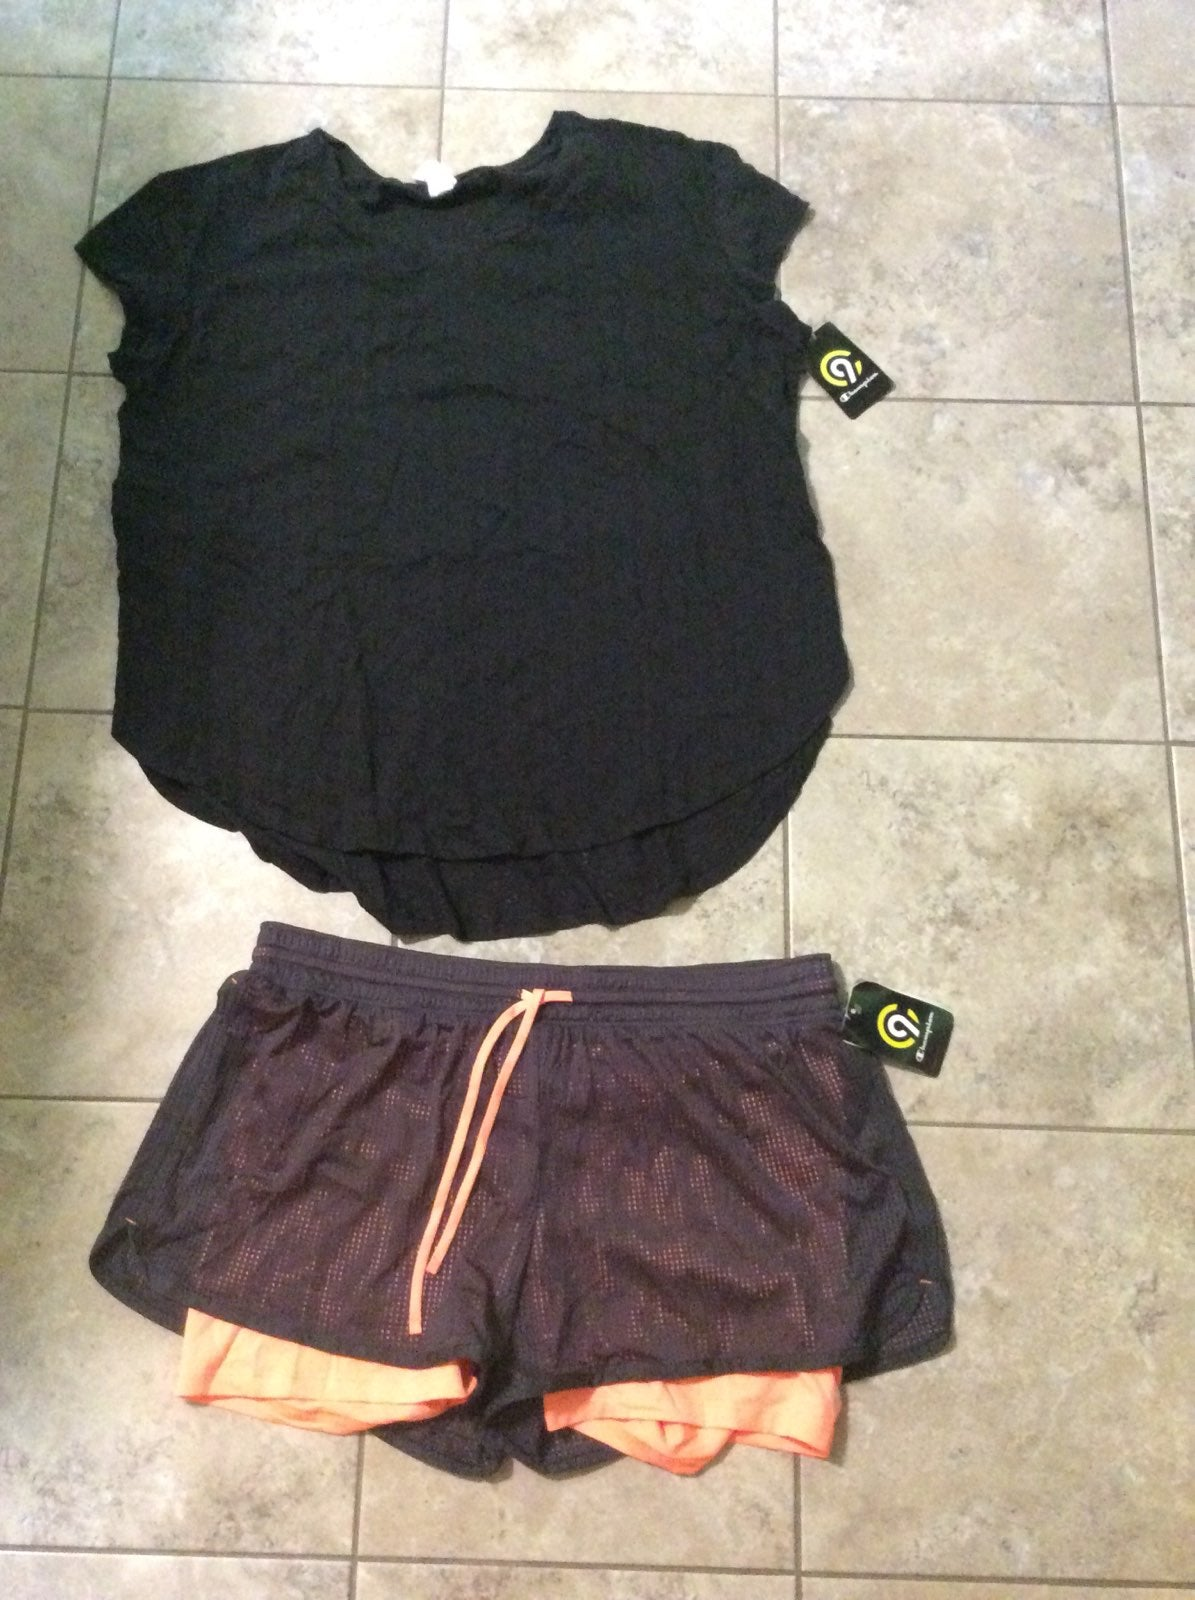 Womens bRand new  xl athletic outfit